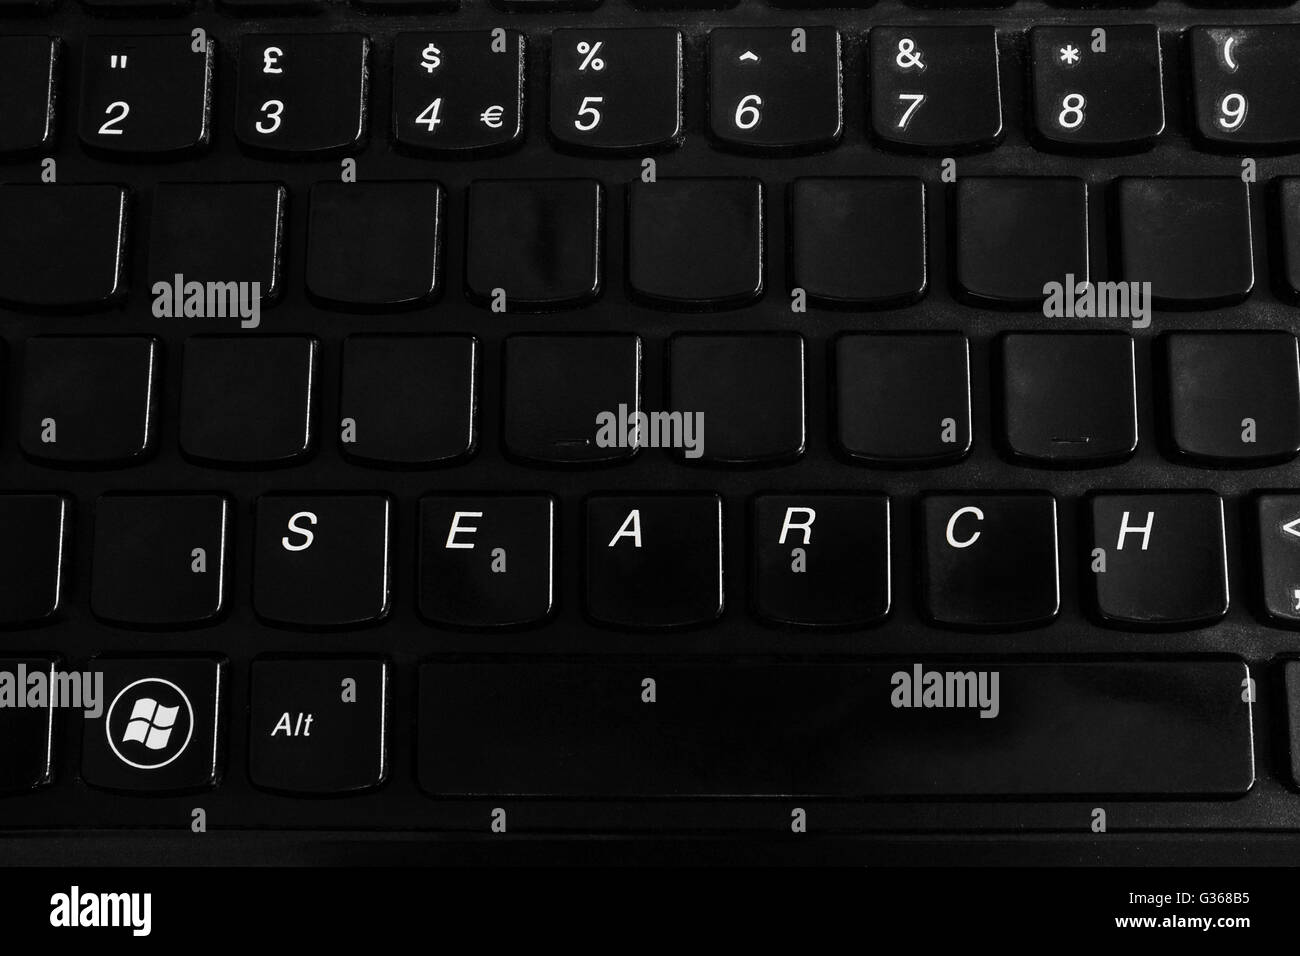 A black laptop keyboard with search on it. - Stock Image